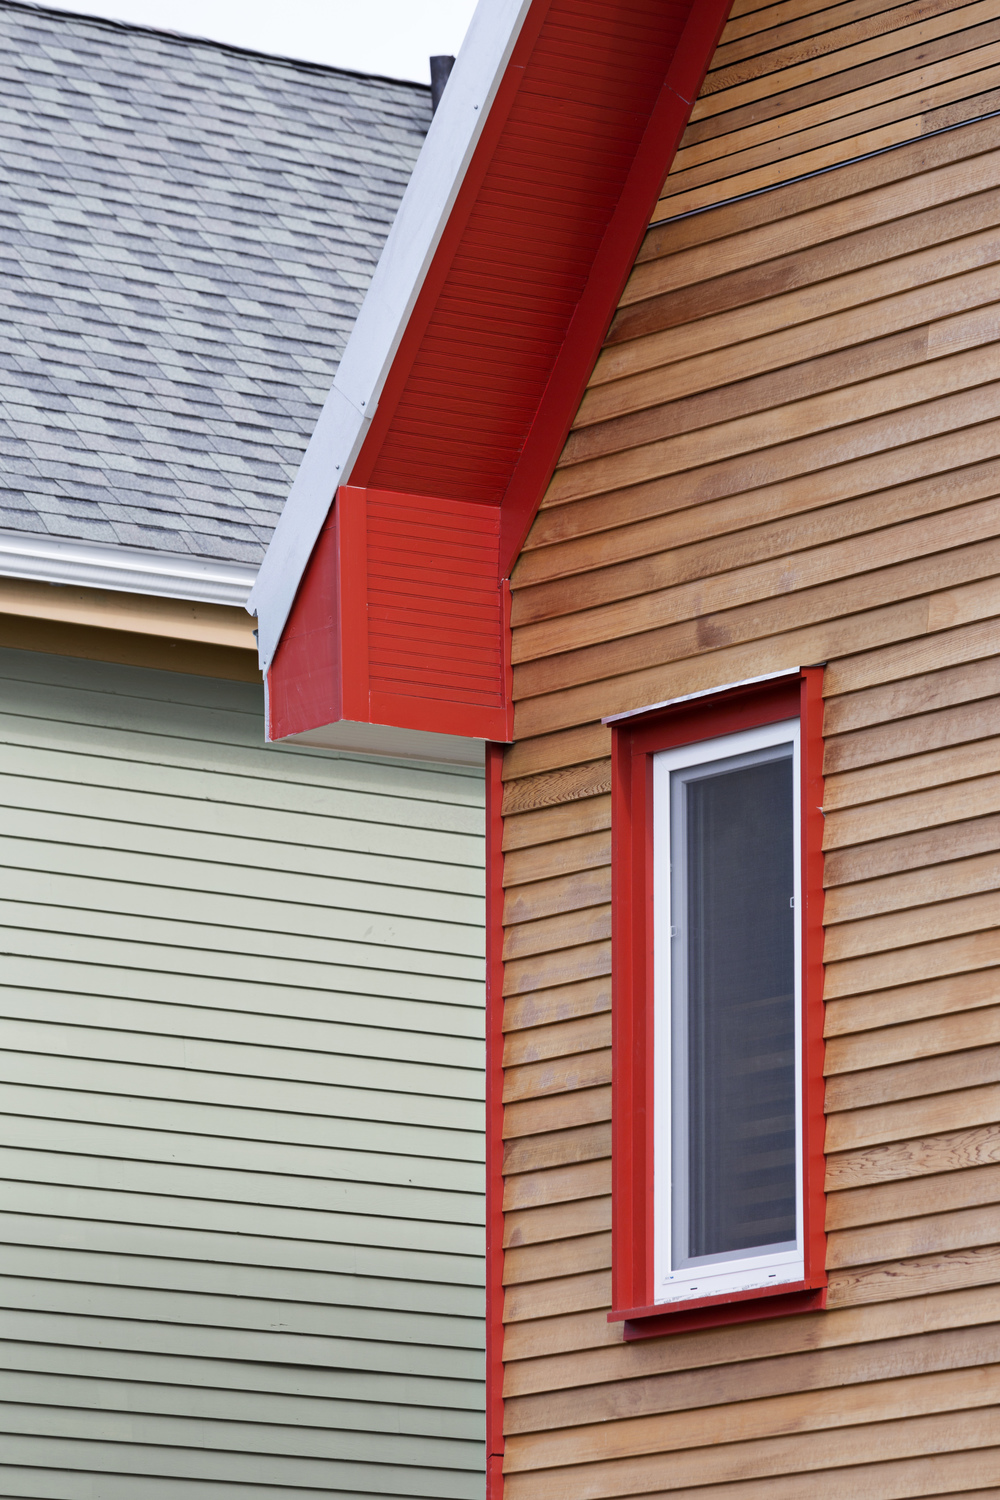 Exterior Siding Window Roof.jpg